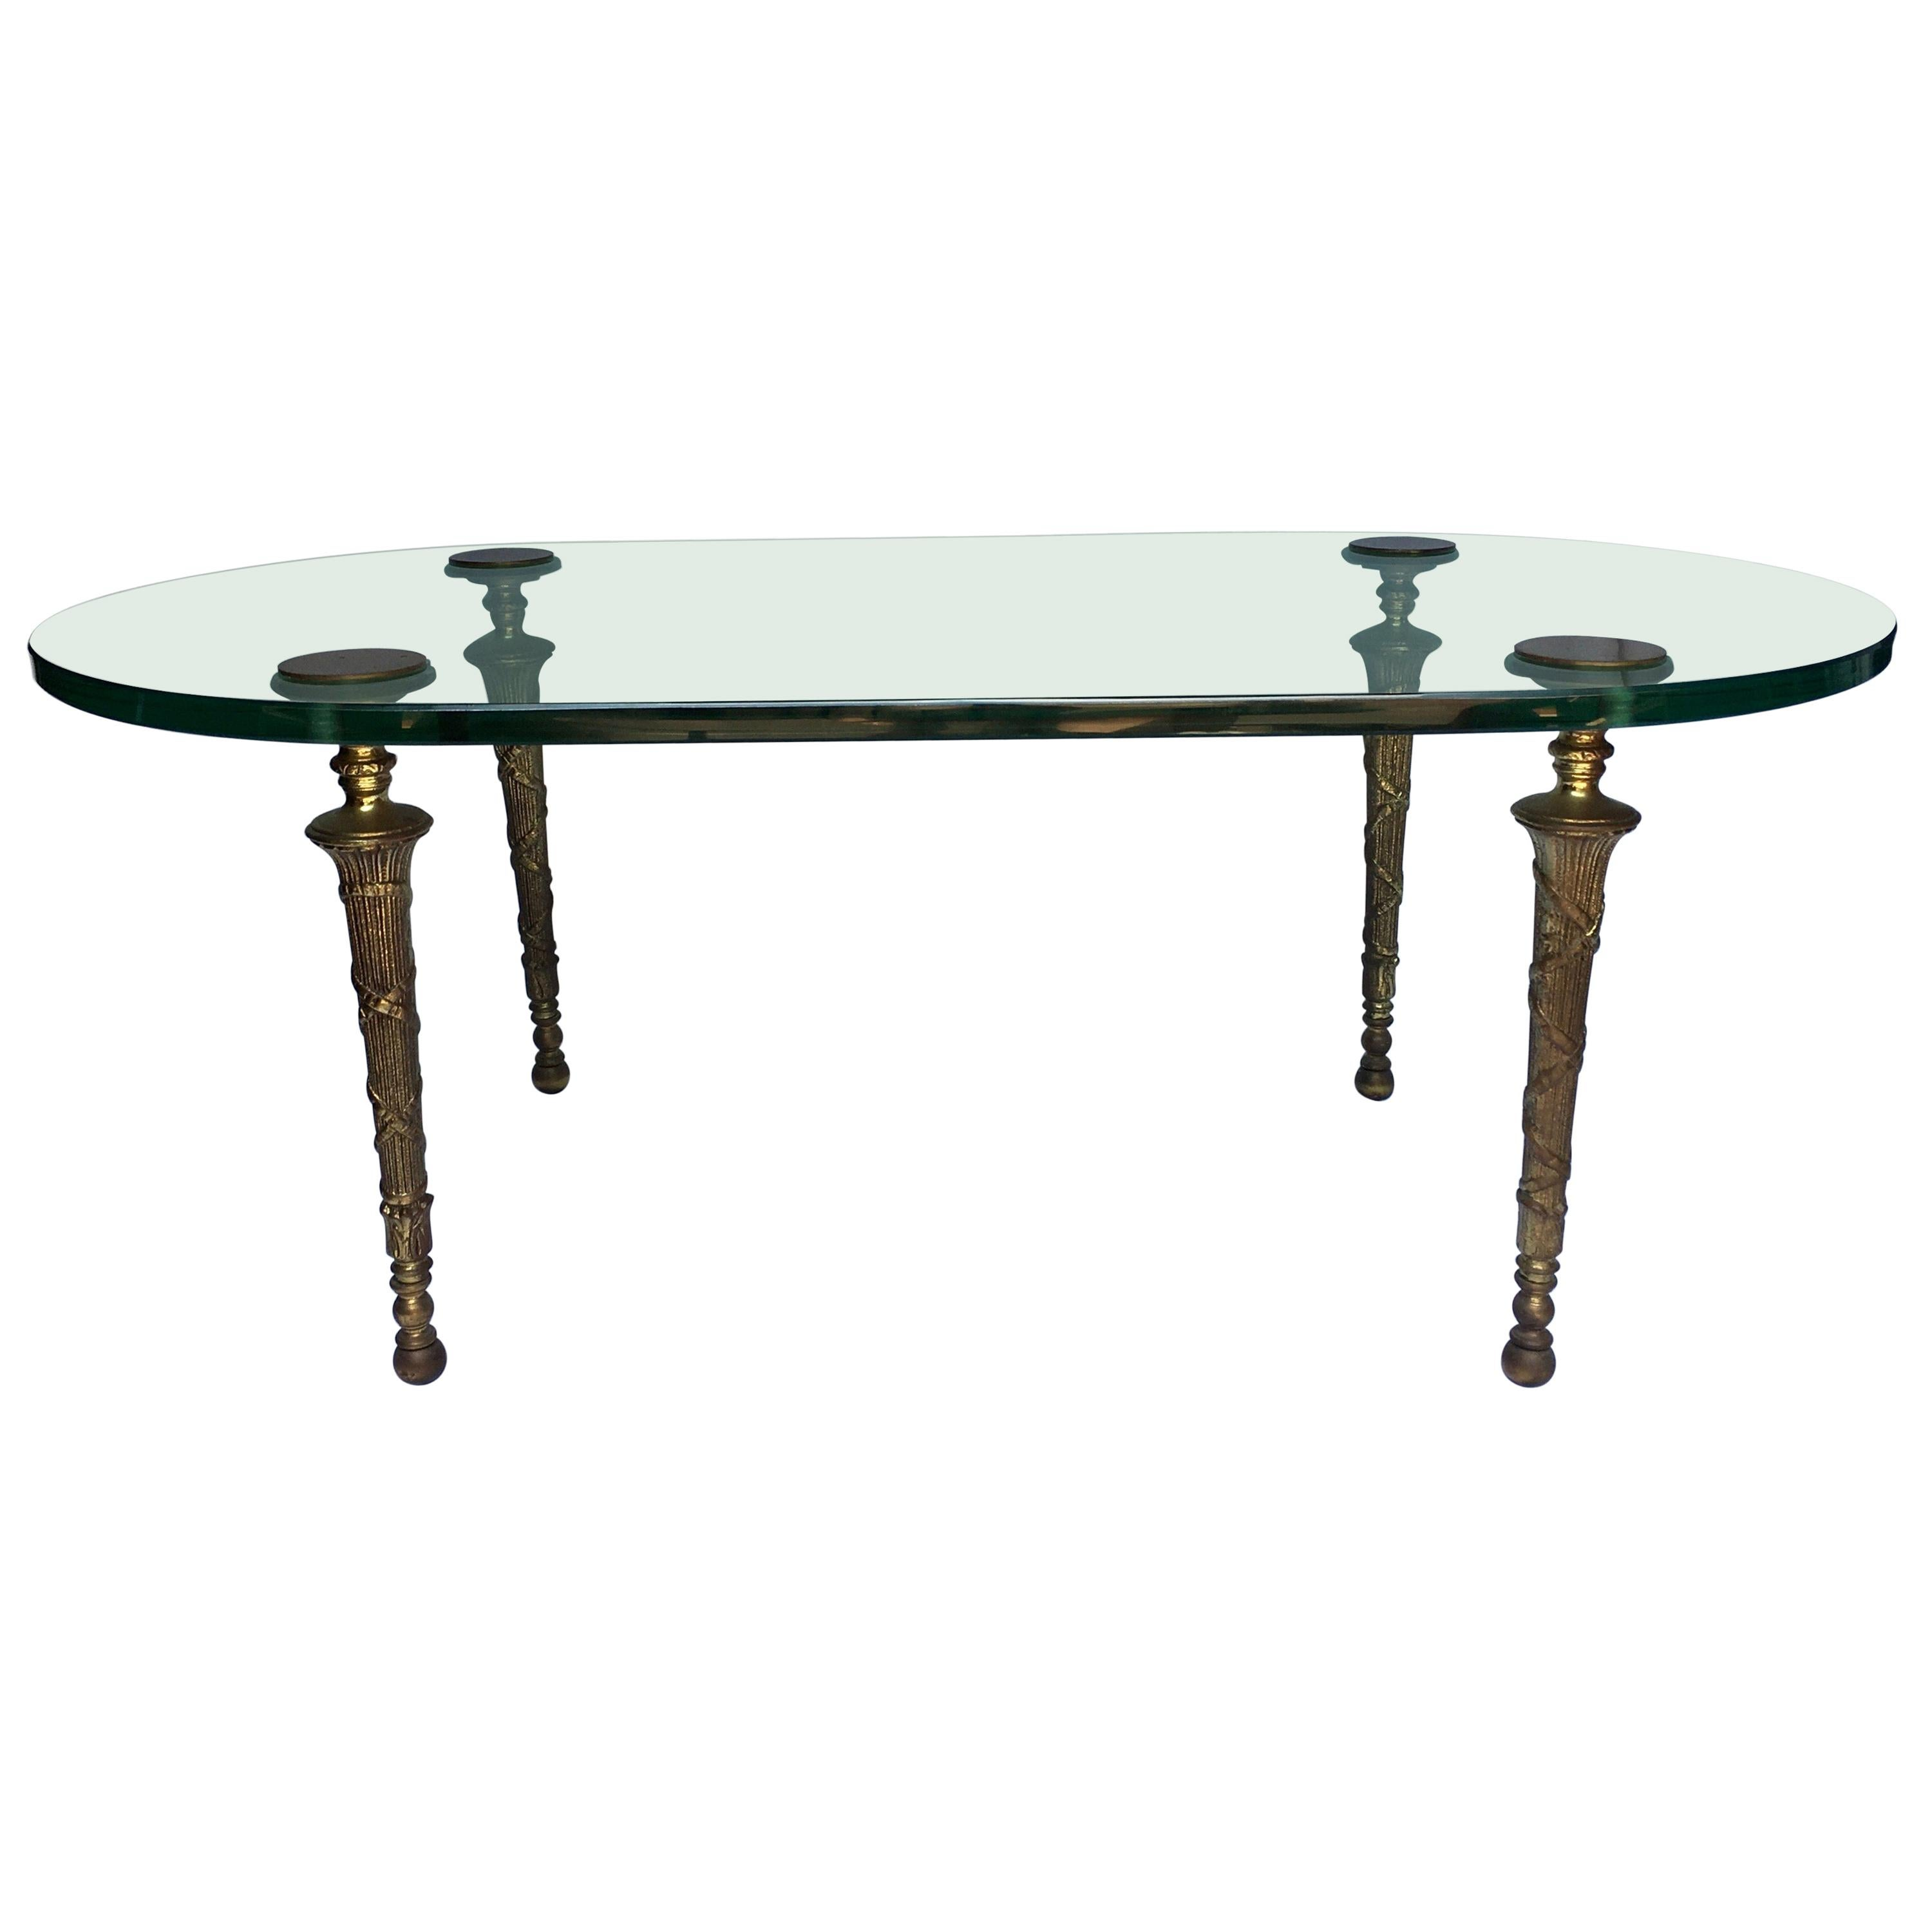 Neoclassical Maison Jansen Style Oval Glass and Brass Cocktail Table, France